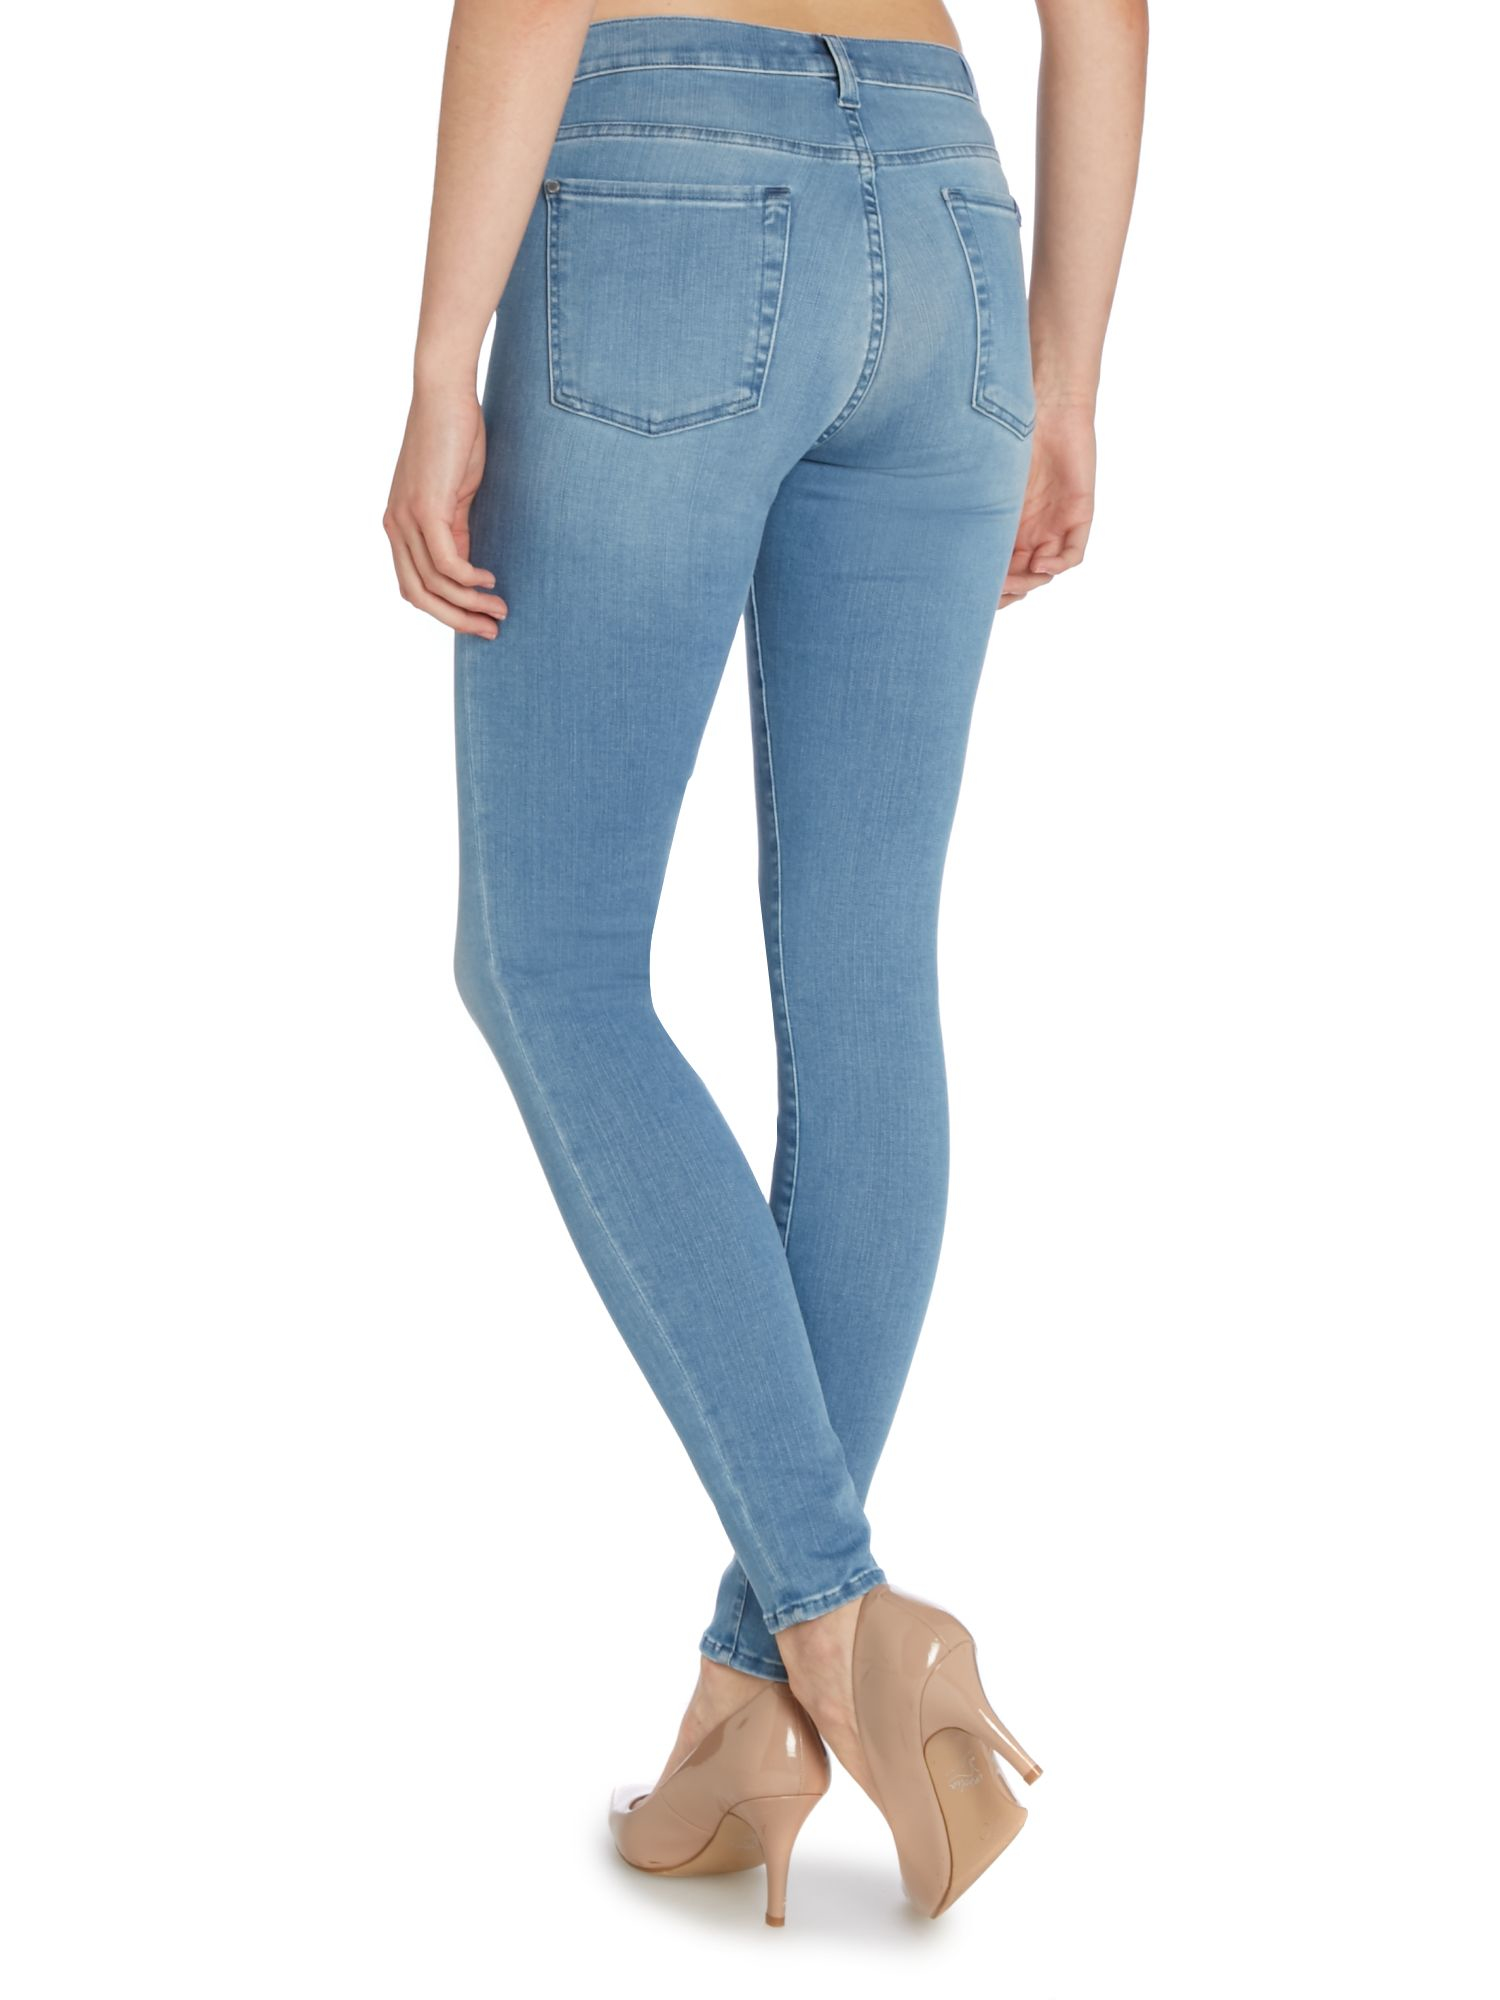 7 for all mankind high waisted skinny jean in second skin. Black Bedroom Furniture Sets. Home Design Ideas